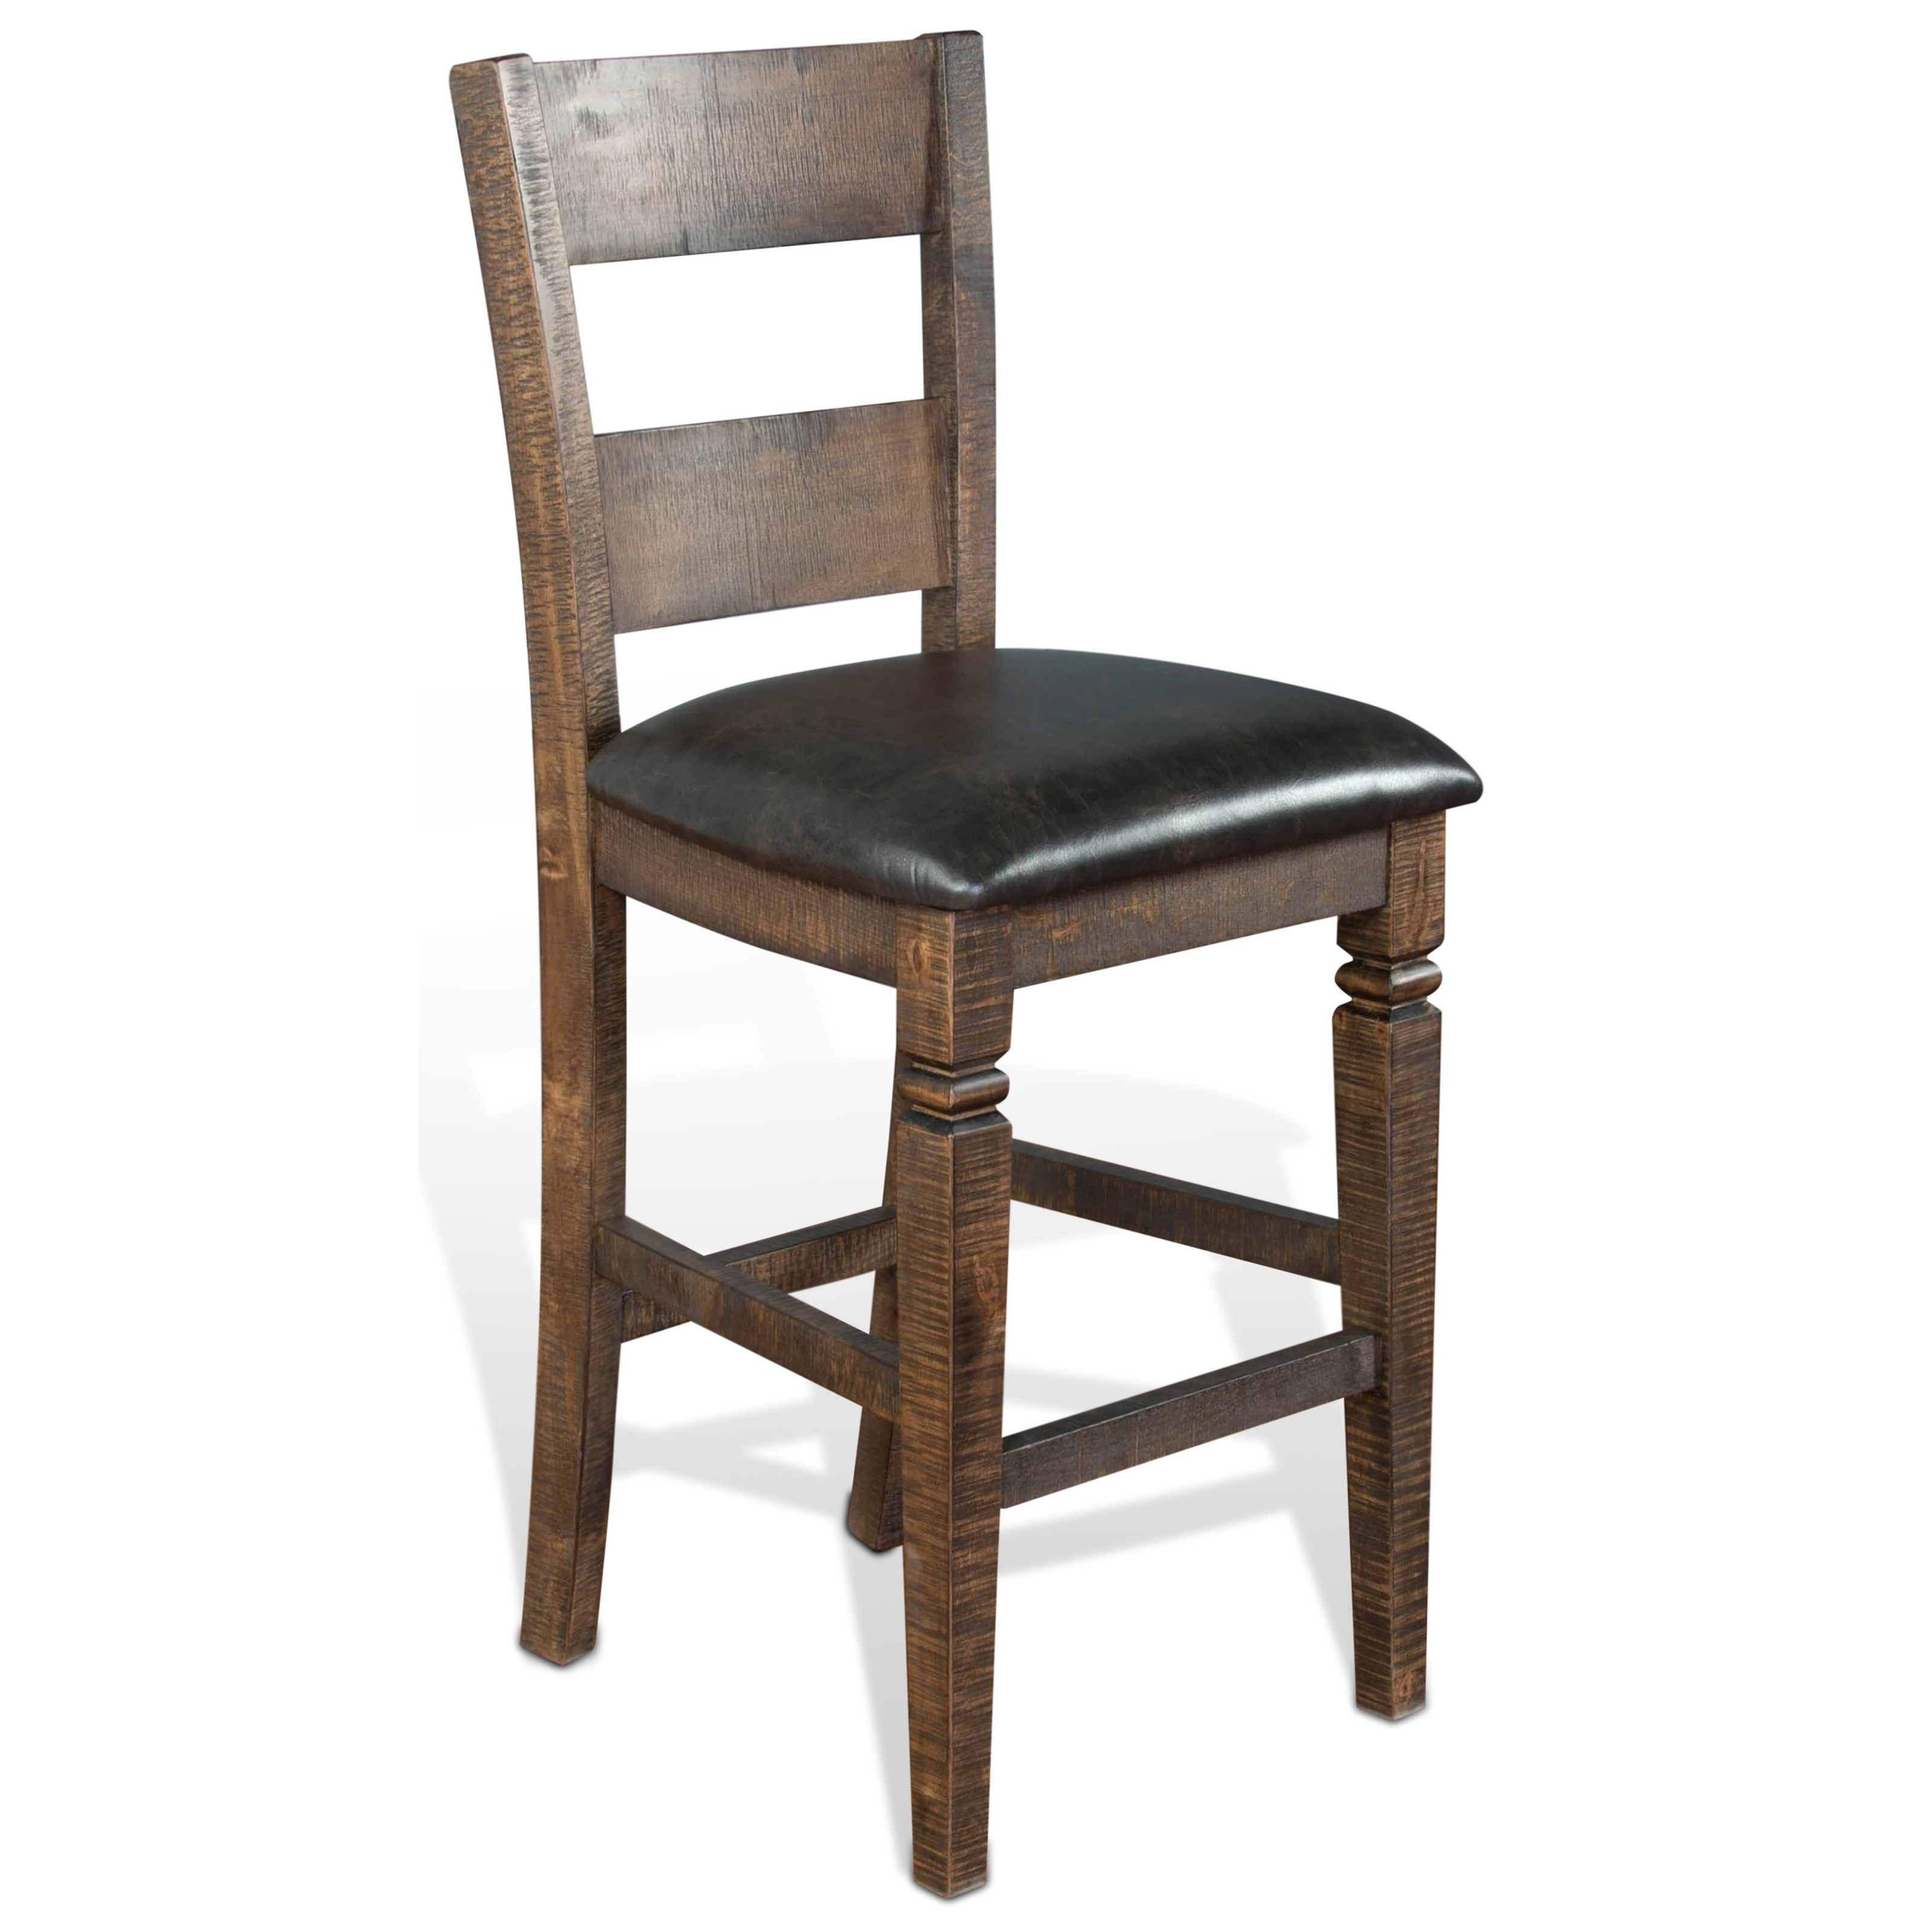 Homestead 2 Ladderback Barstool by Sunny Designs at Darvin Furniture